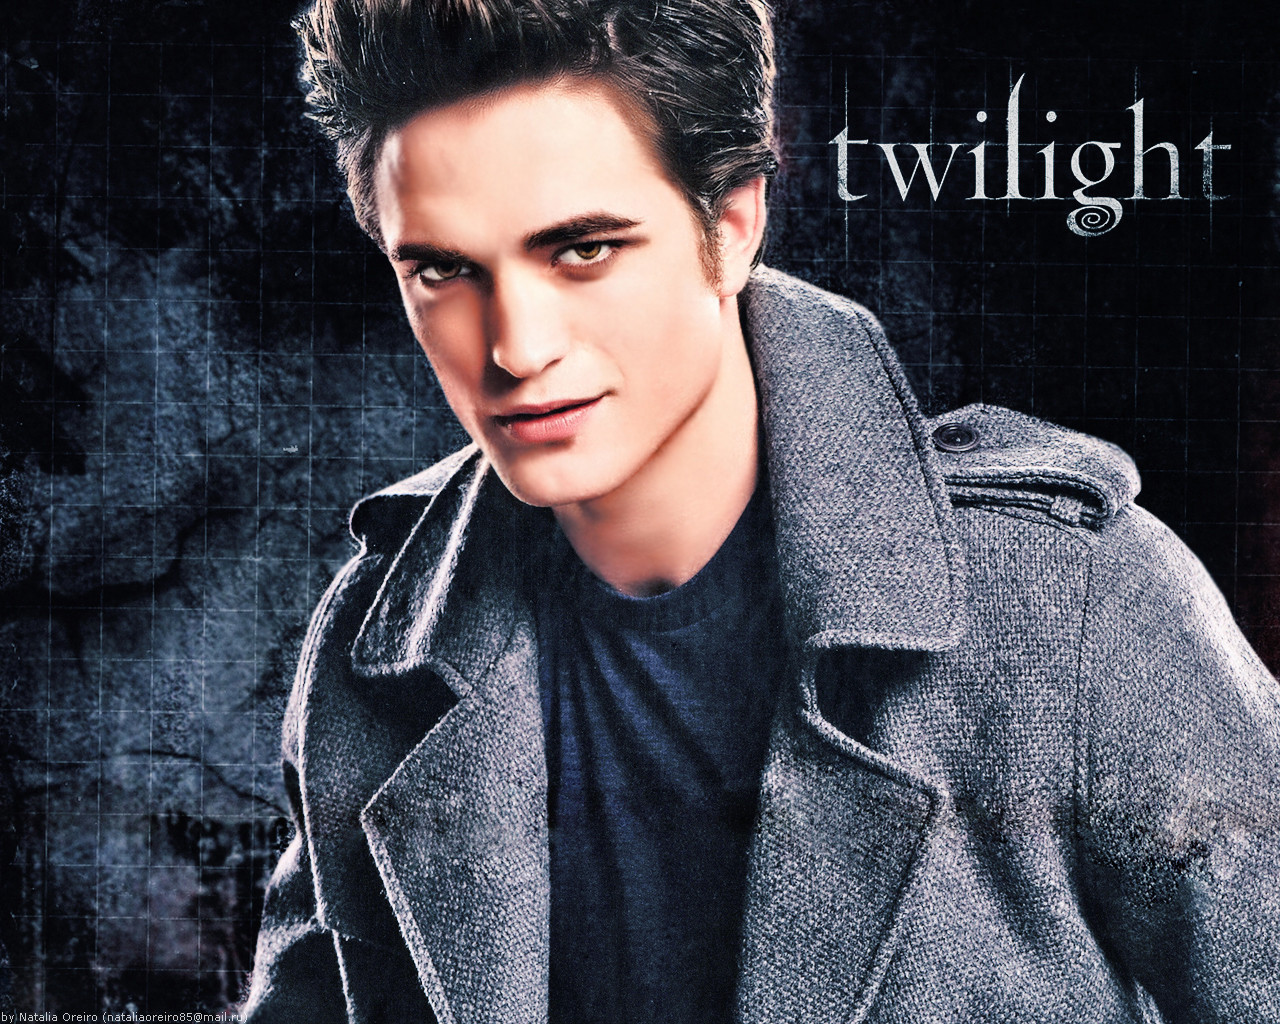 Edward Cullen from Twilight by Stephanie Meyer